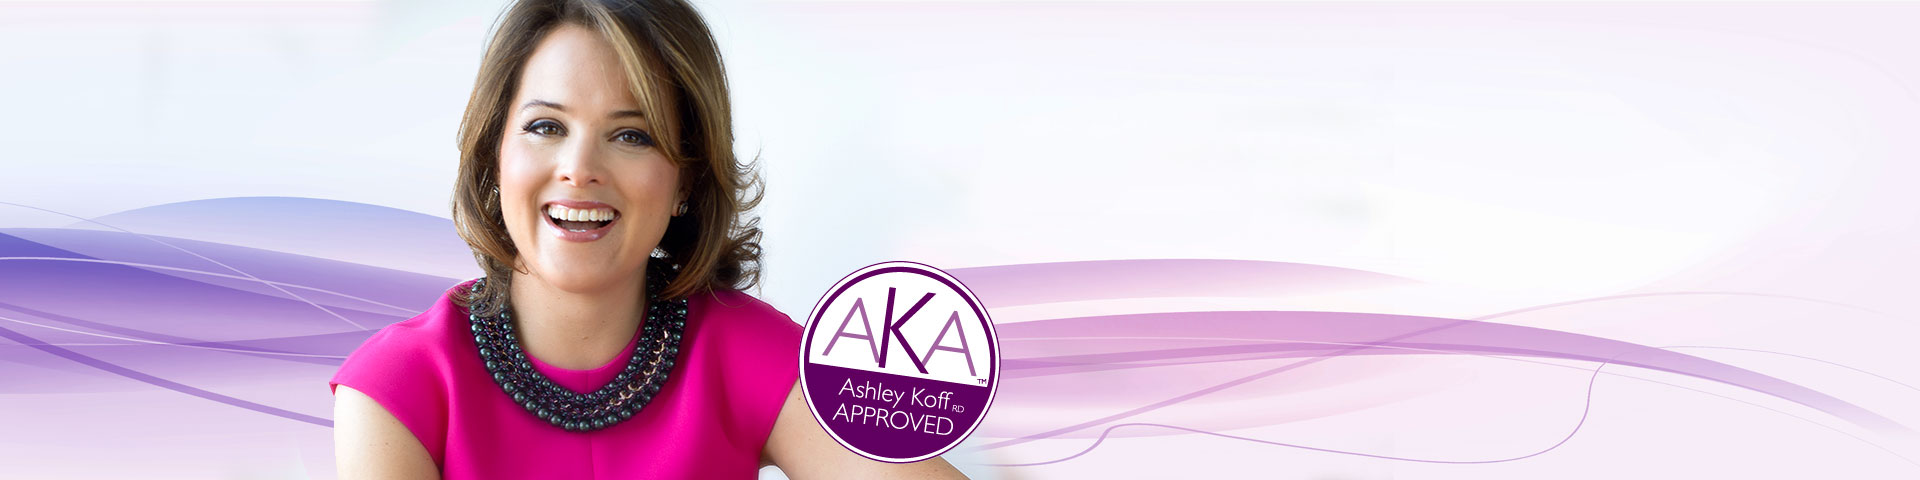 slider-background-ashley-koff